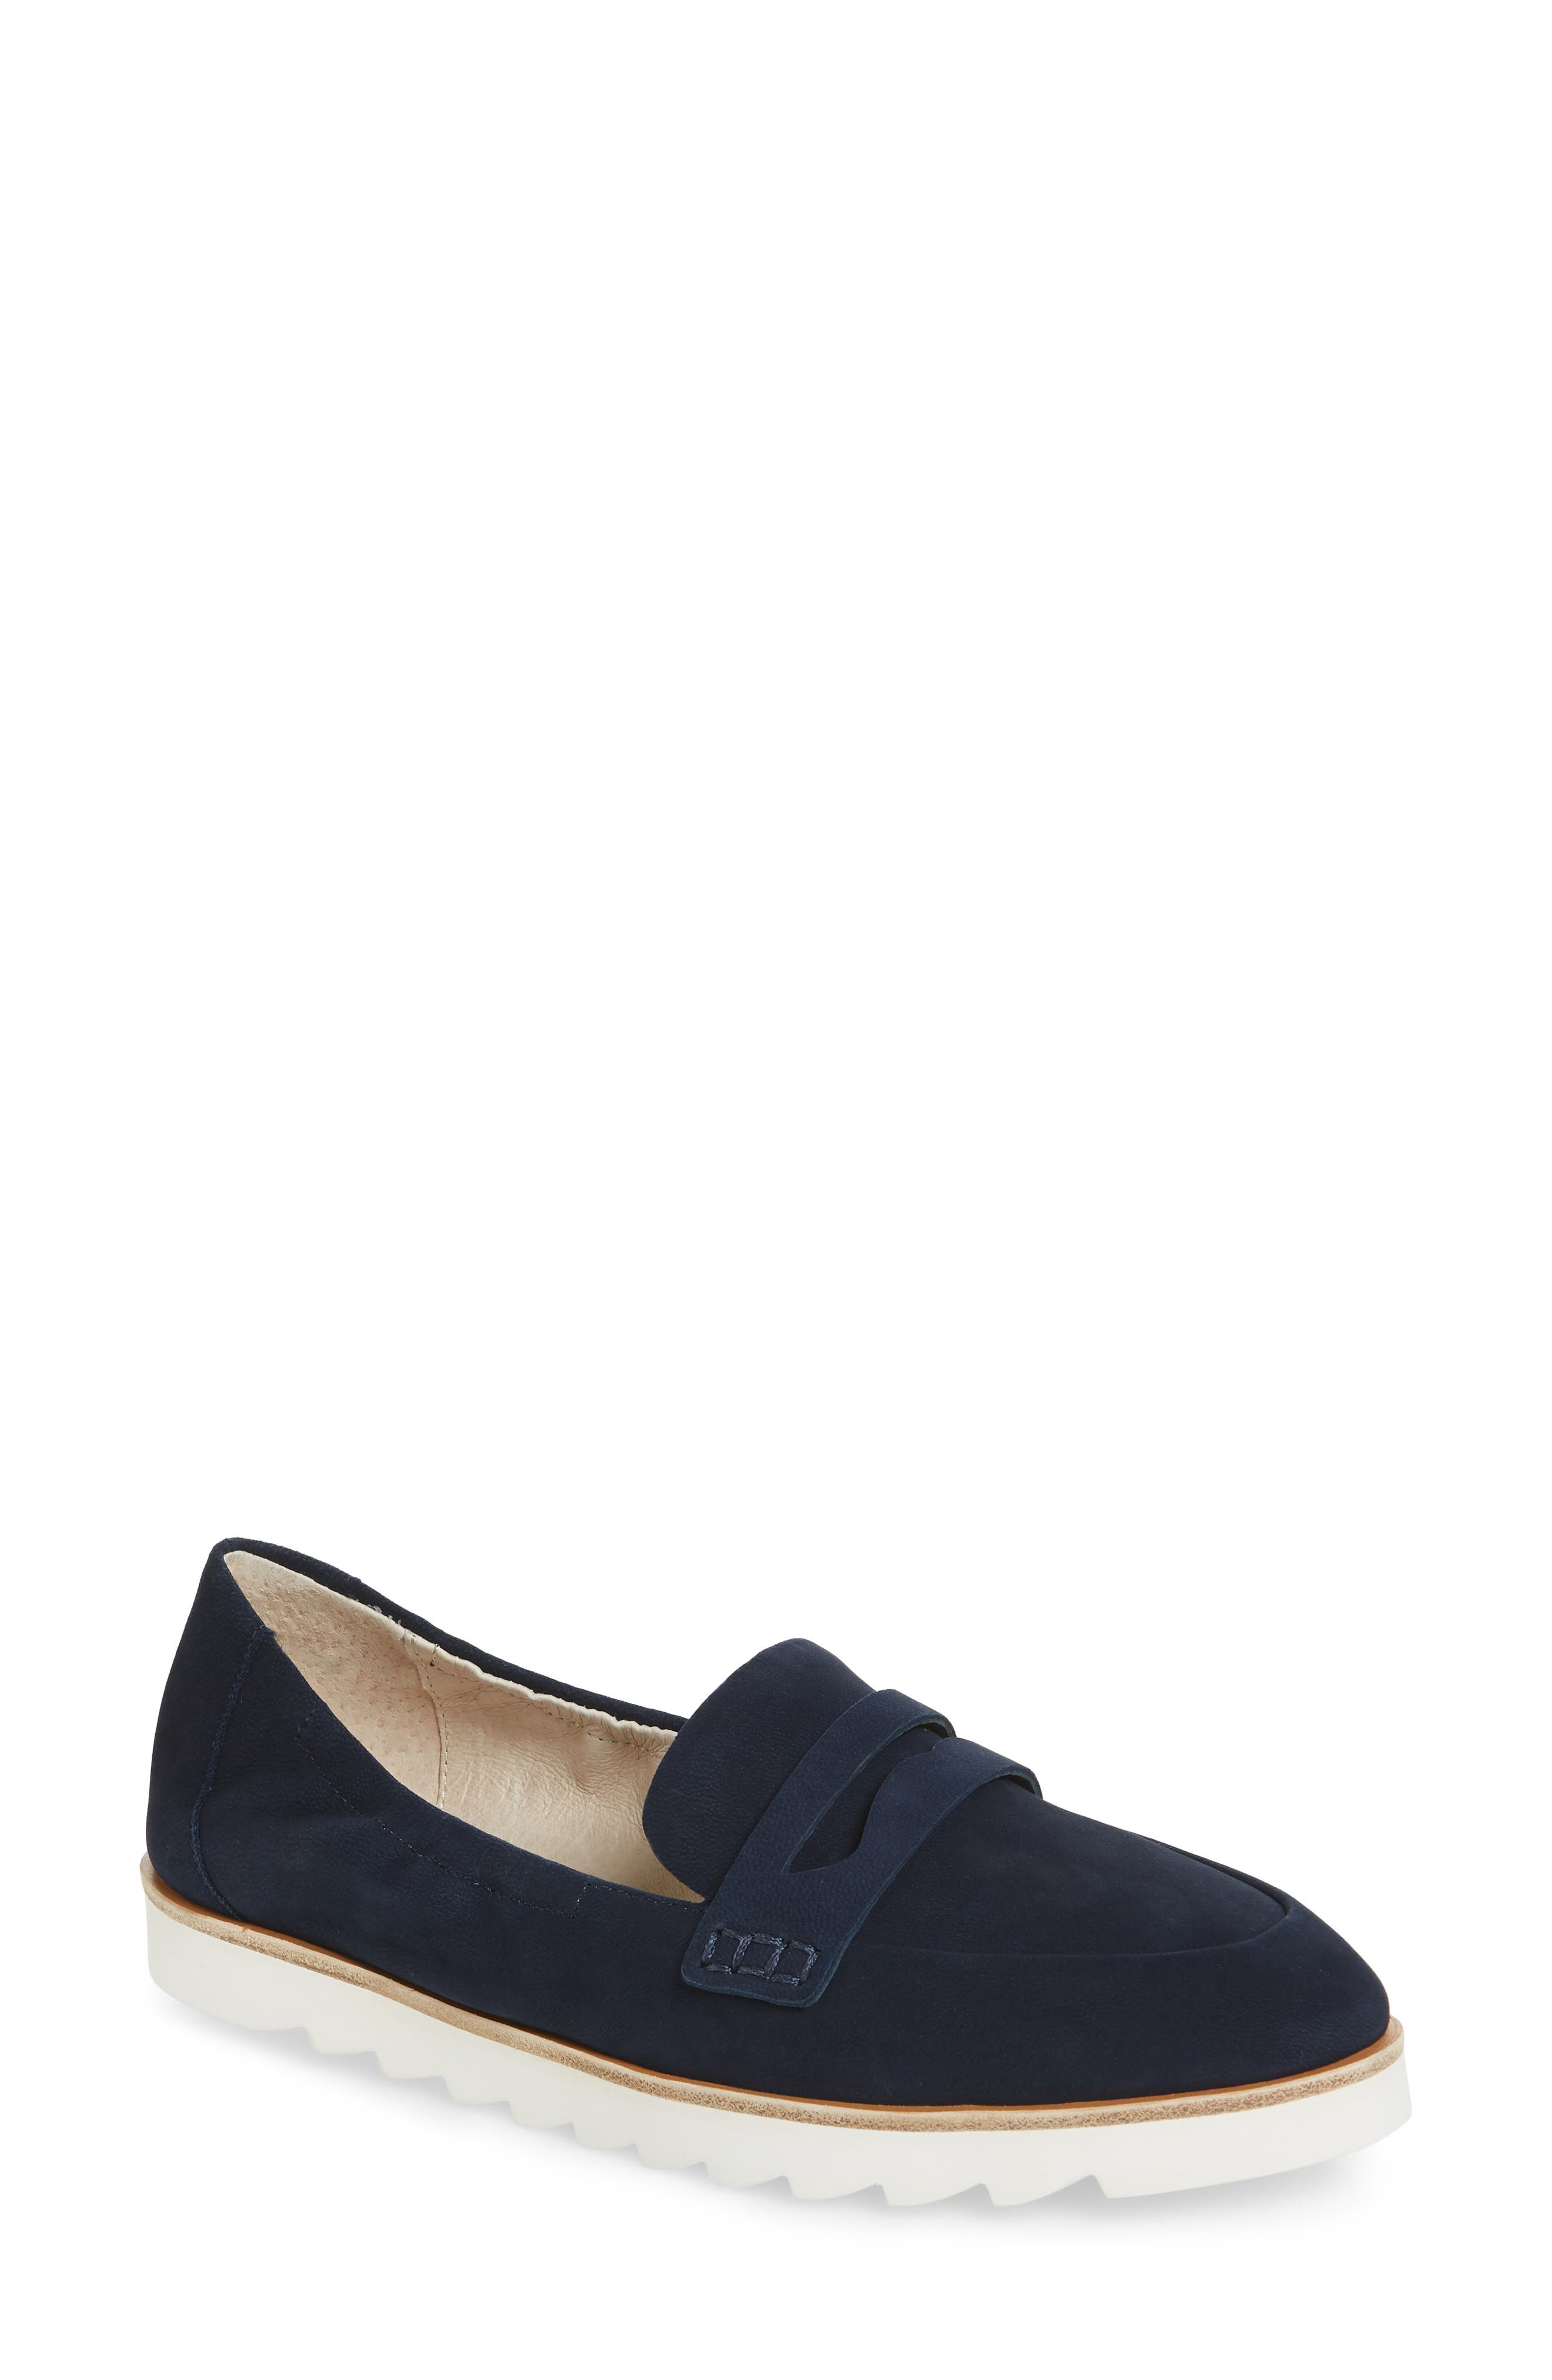 Rylee Penny Loafer,                             Main thumbnail 1, color,                             Navy Nubuck